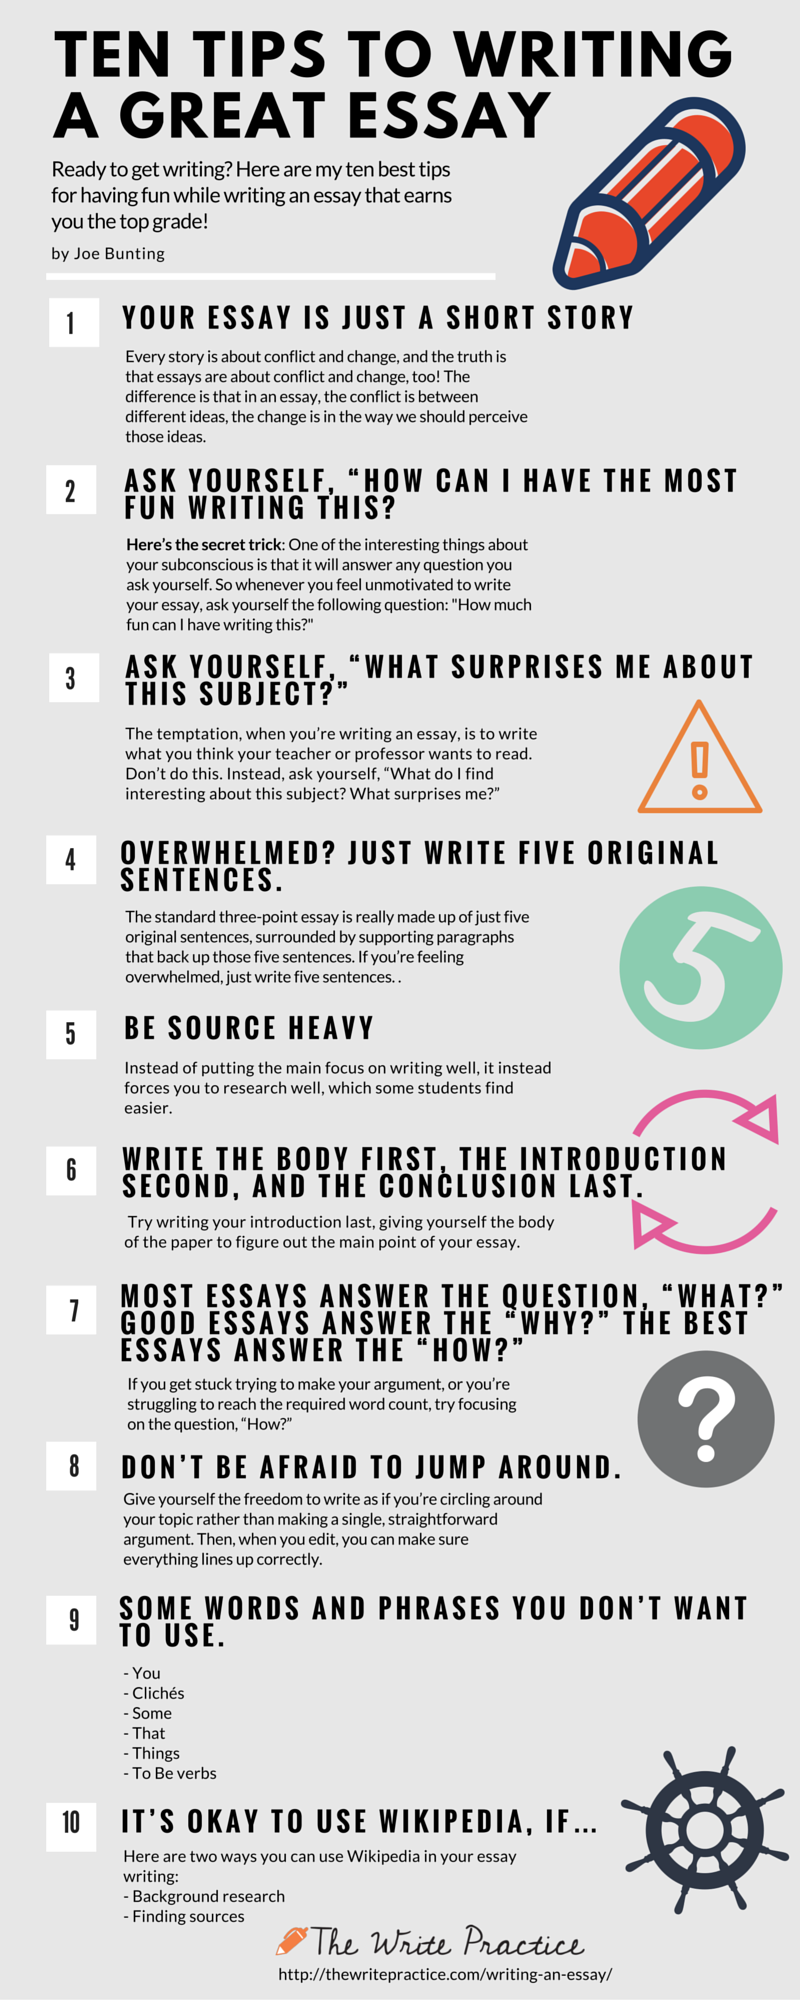 10 rules to writing an essay Guidelines for effective writing in regard to letters, reports, memos, resumes, school papers, or even e-mails.